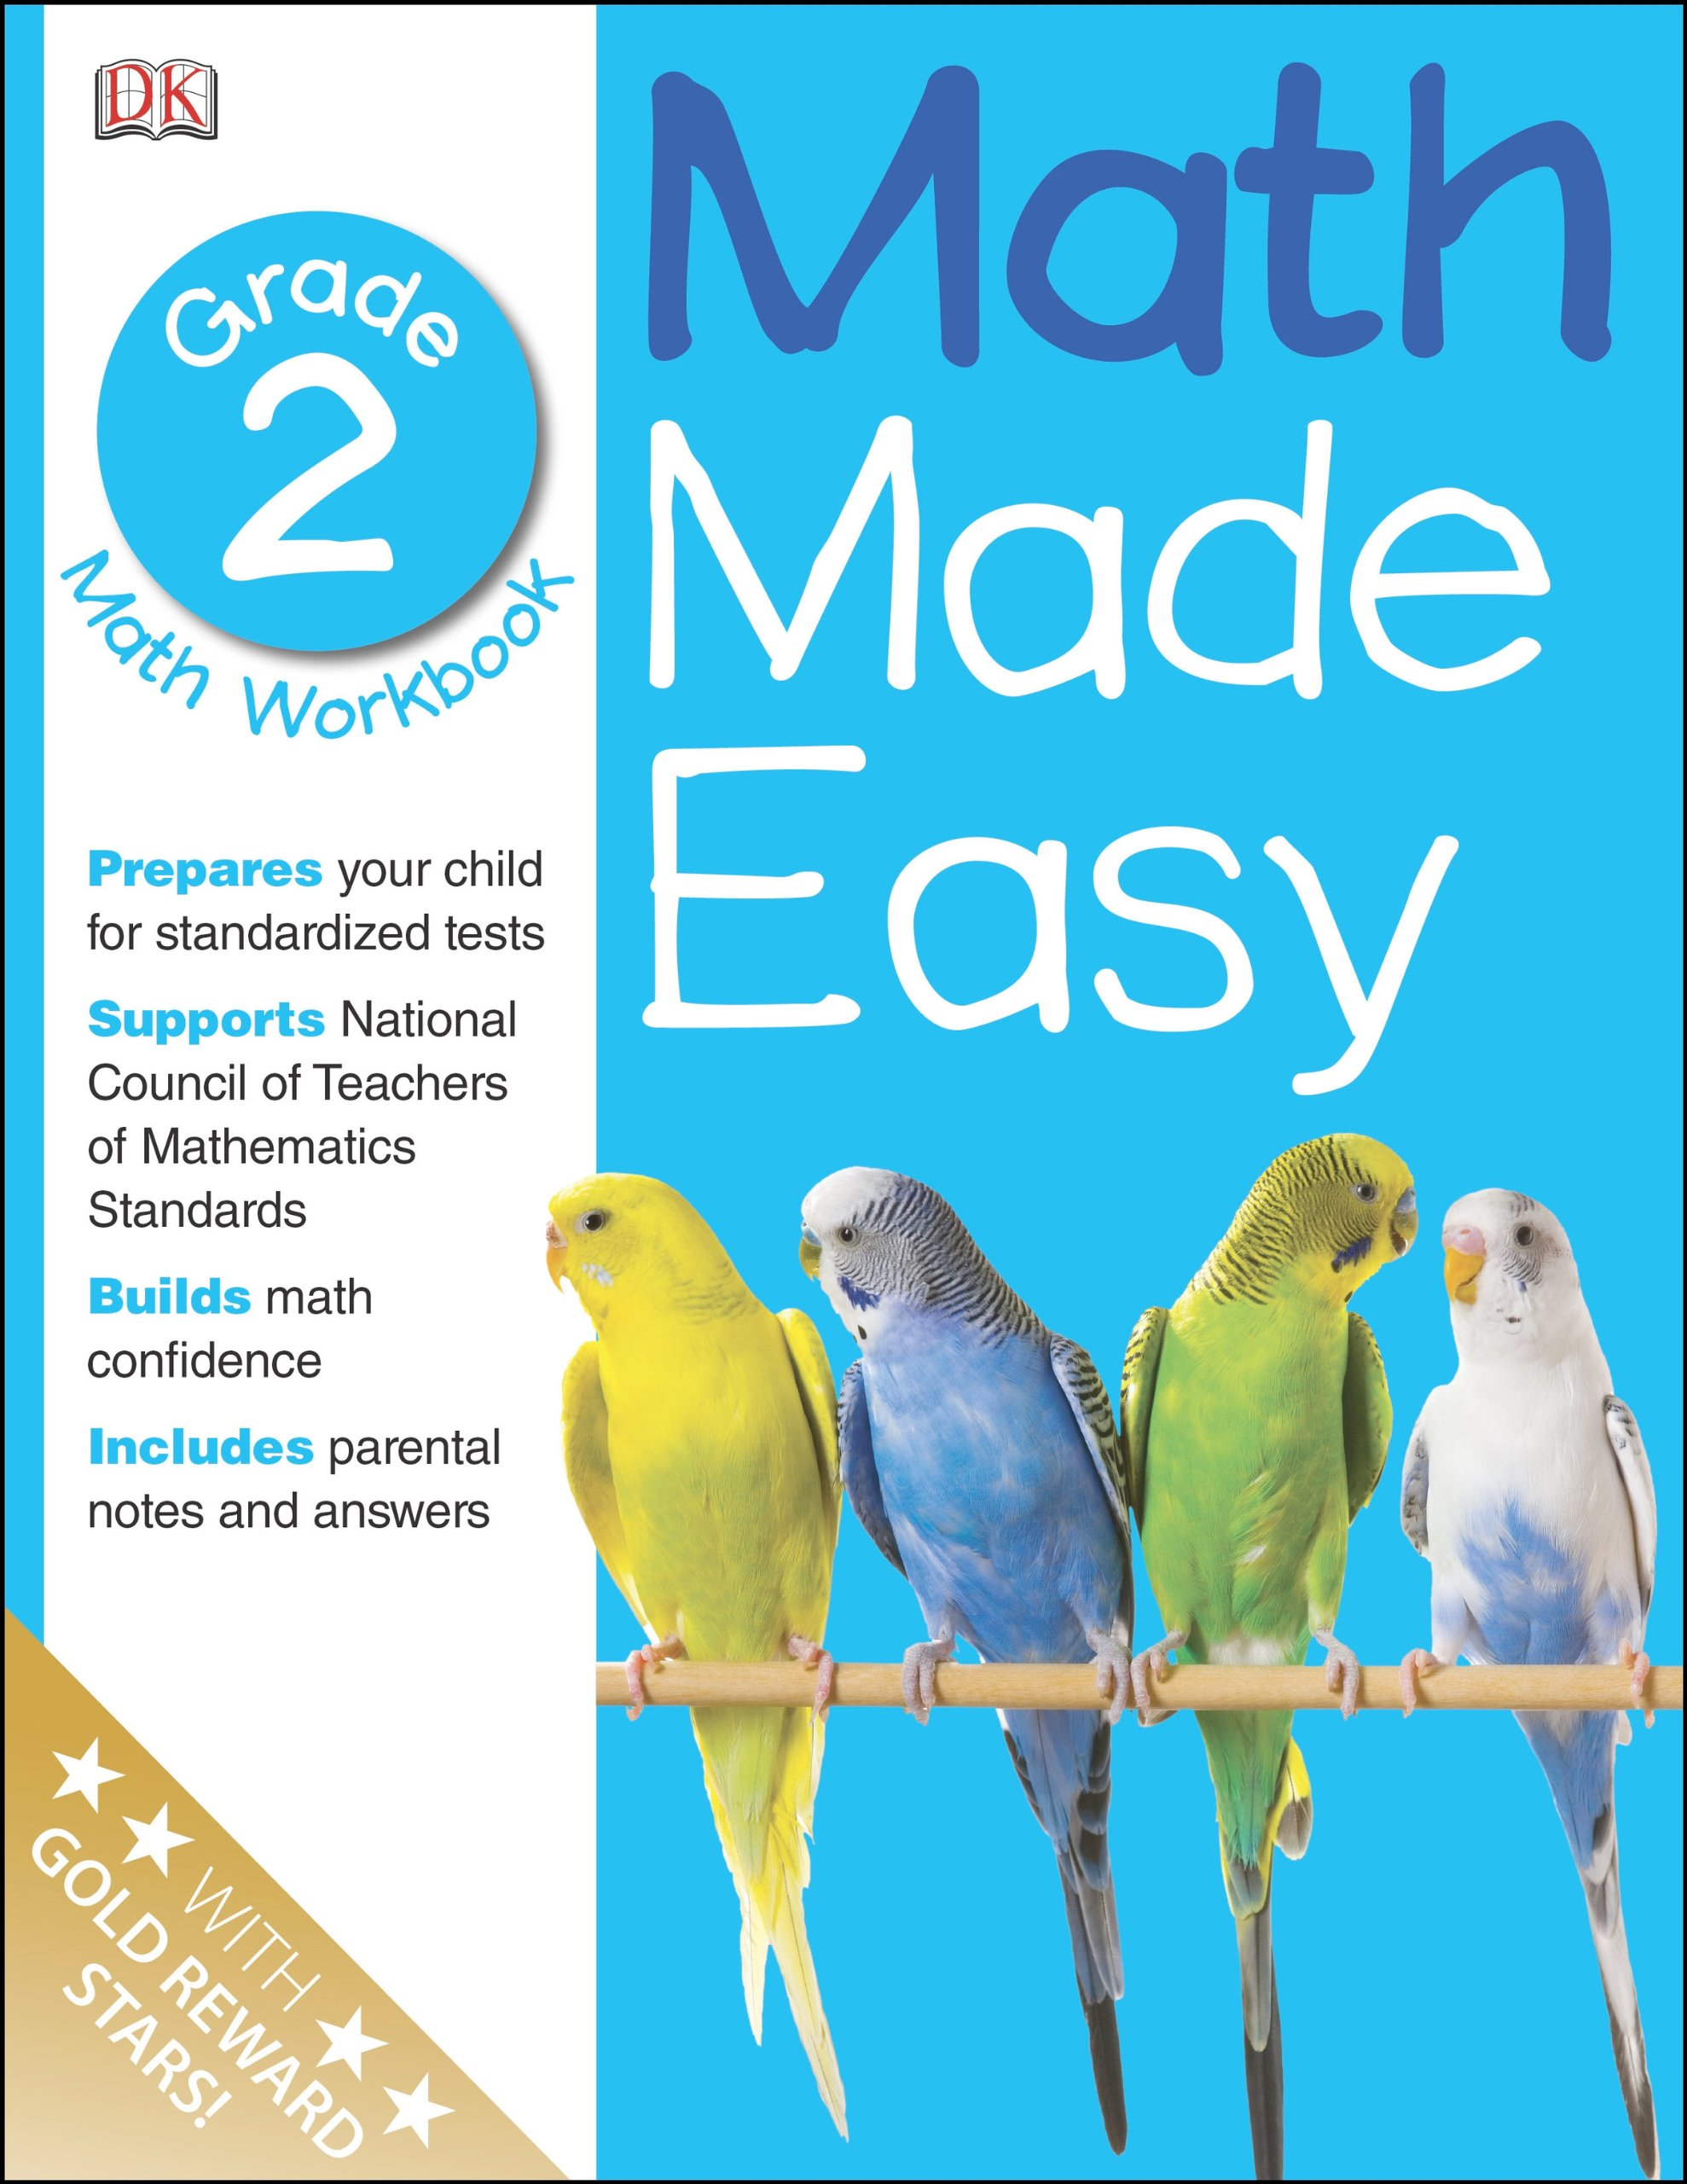 Worksheet Third Grade Math Books math made easy second grade workbook dk publishing 9780789457288 amazon com books